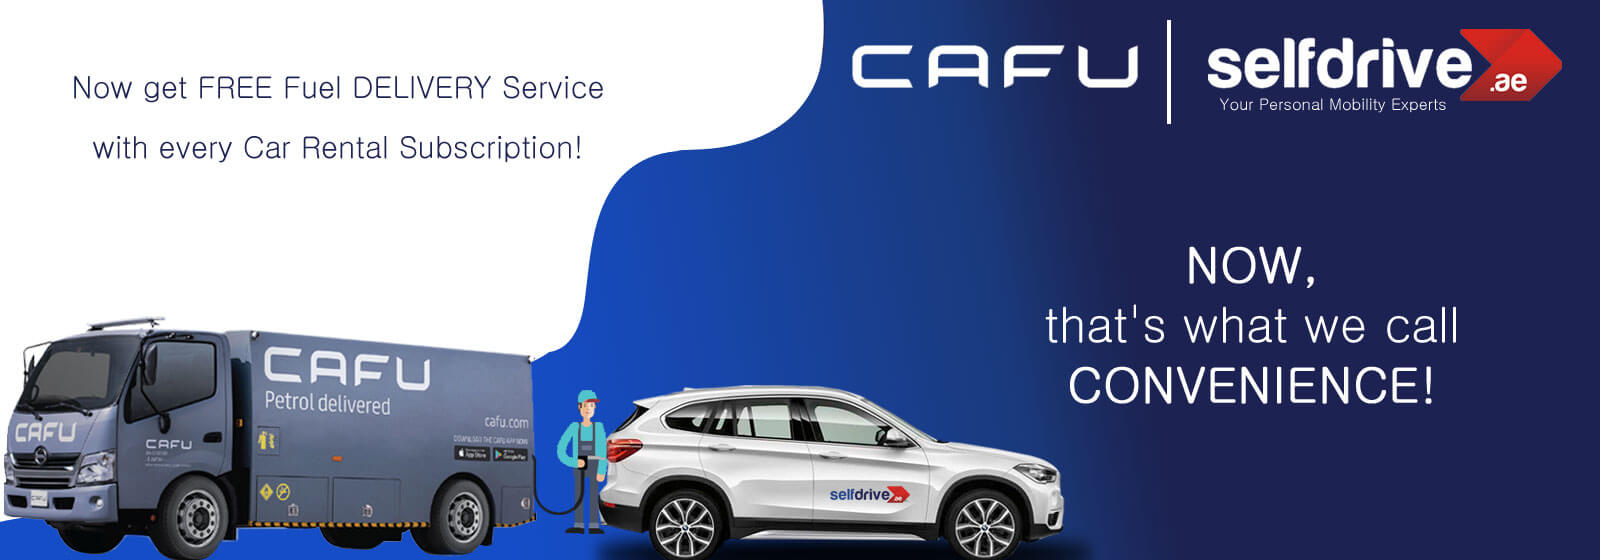 FREE Fuel DELIVERY from CAFU